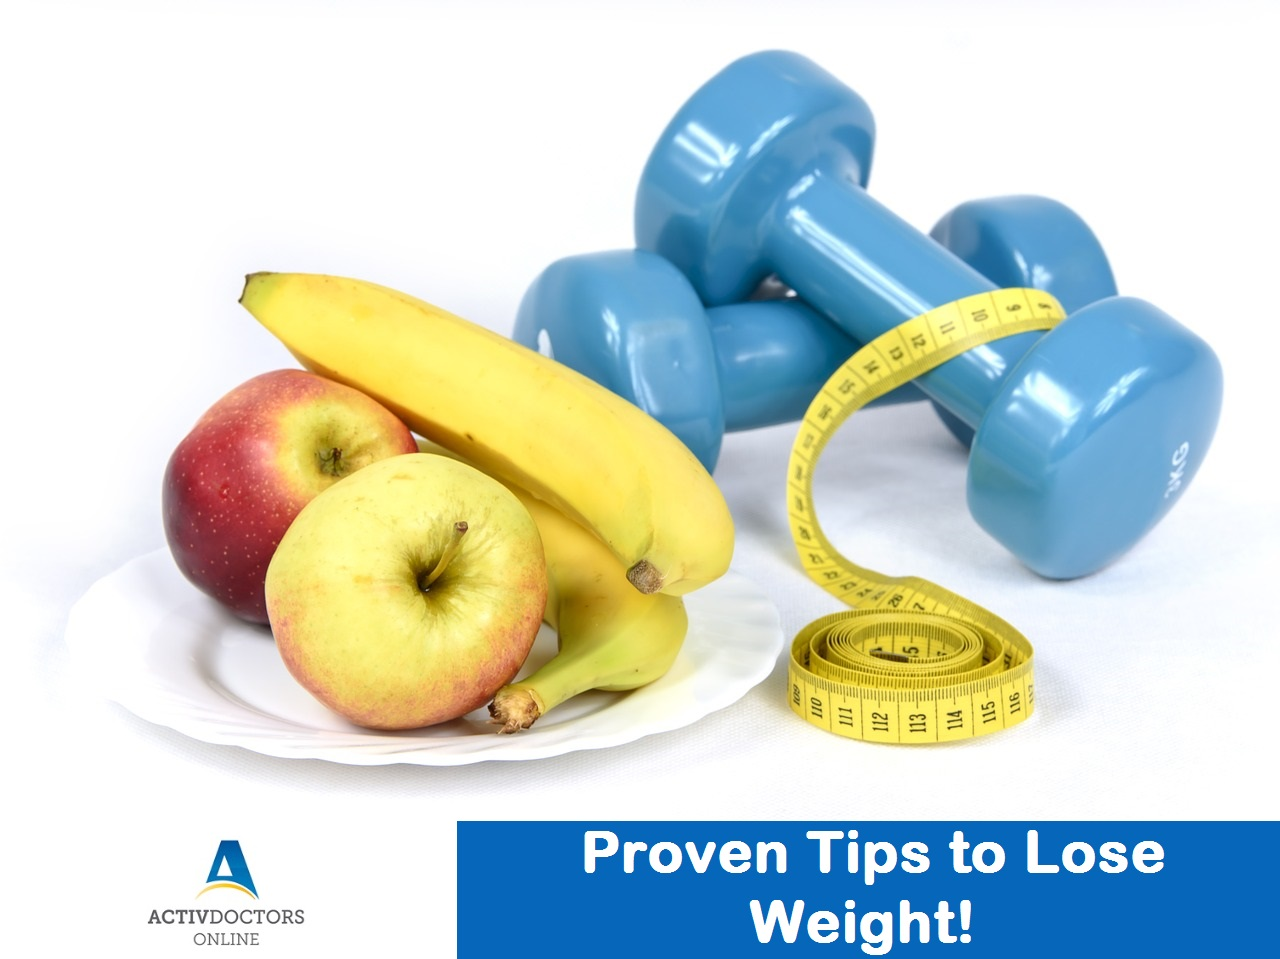 Proven Tips to Lose Weight!